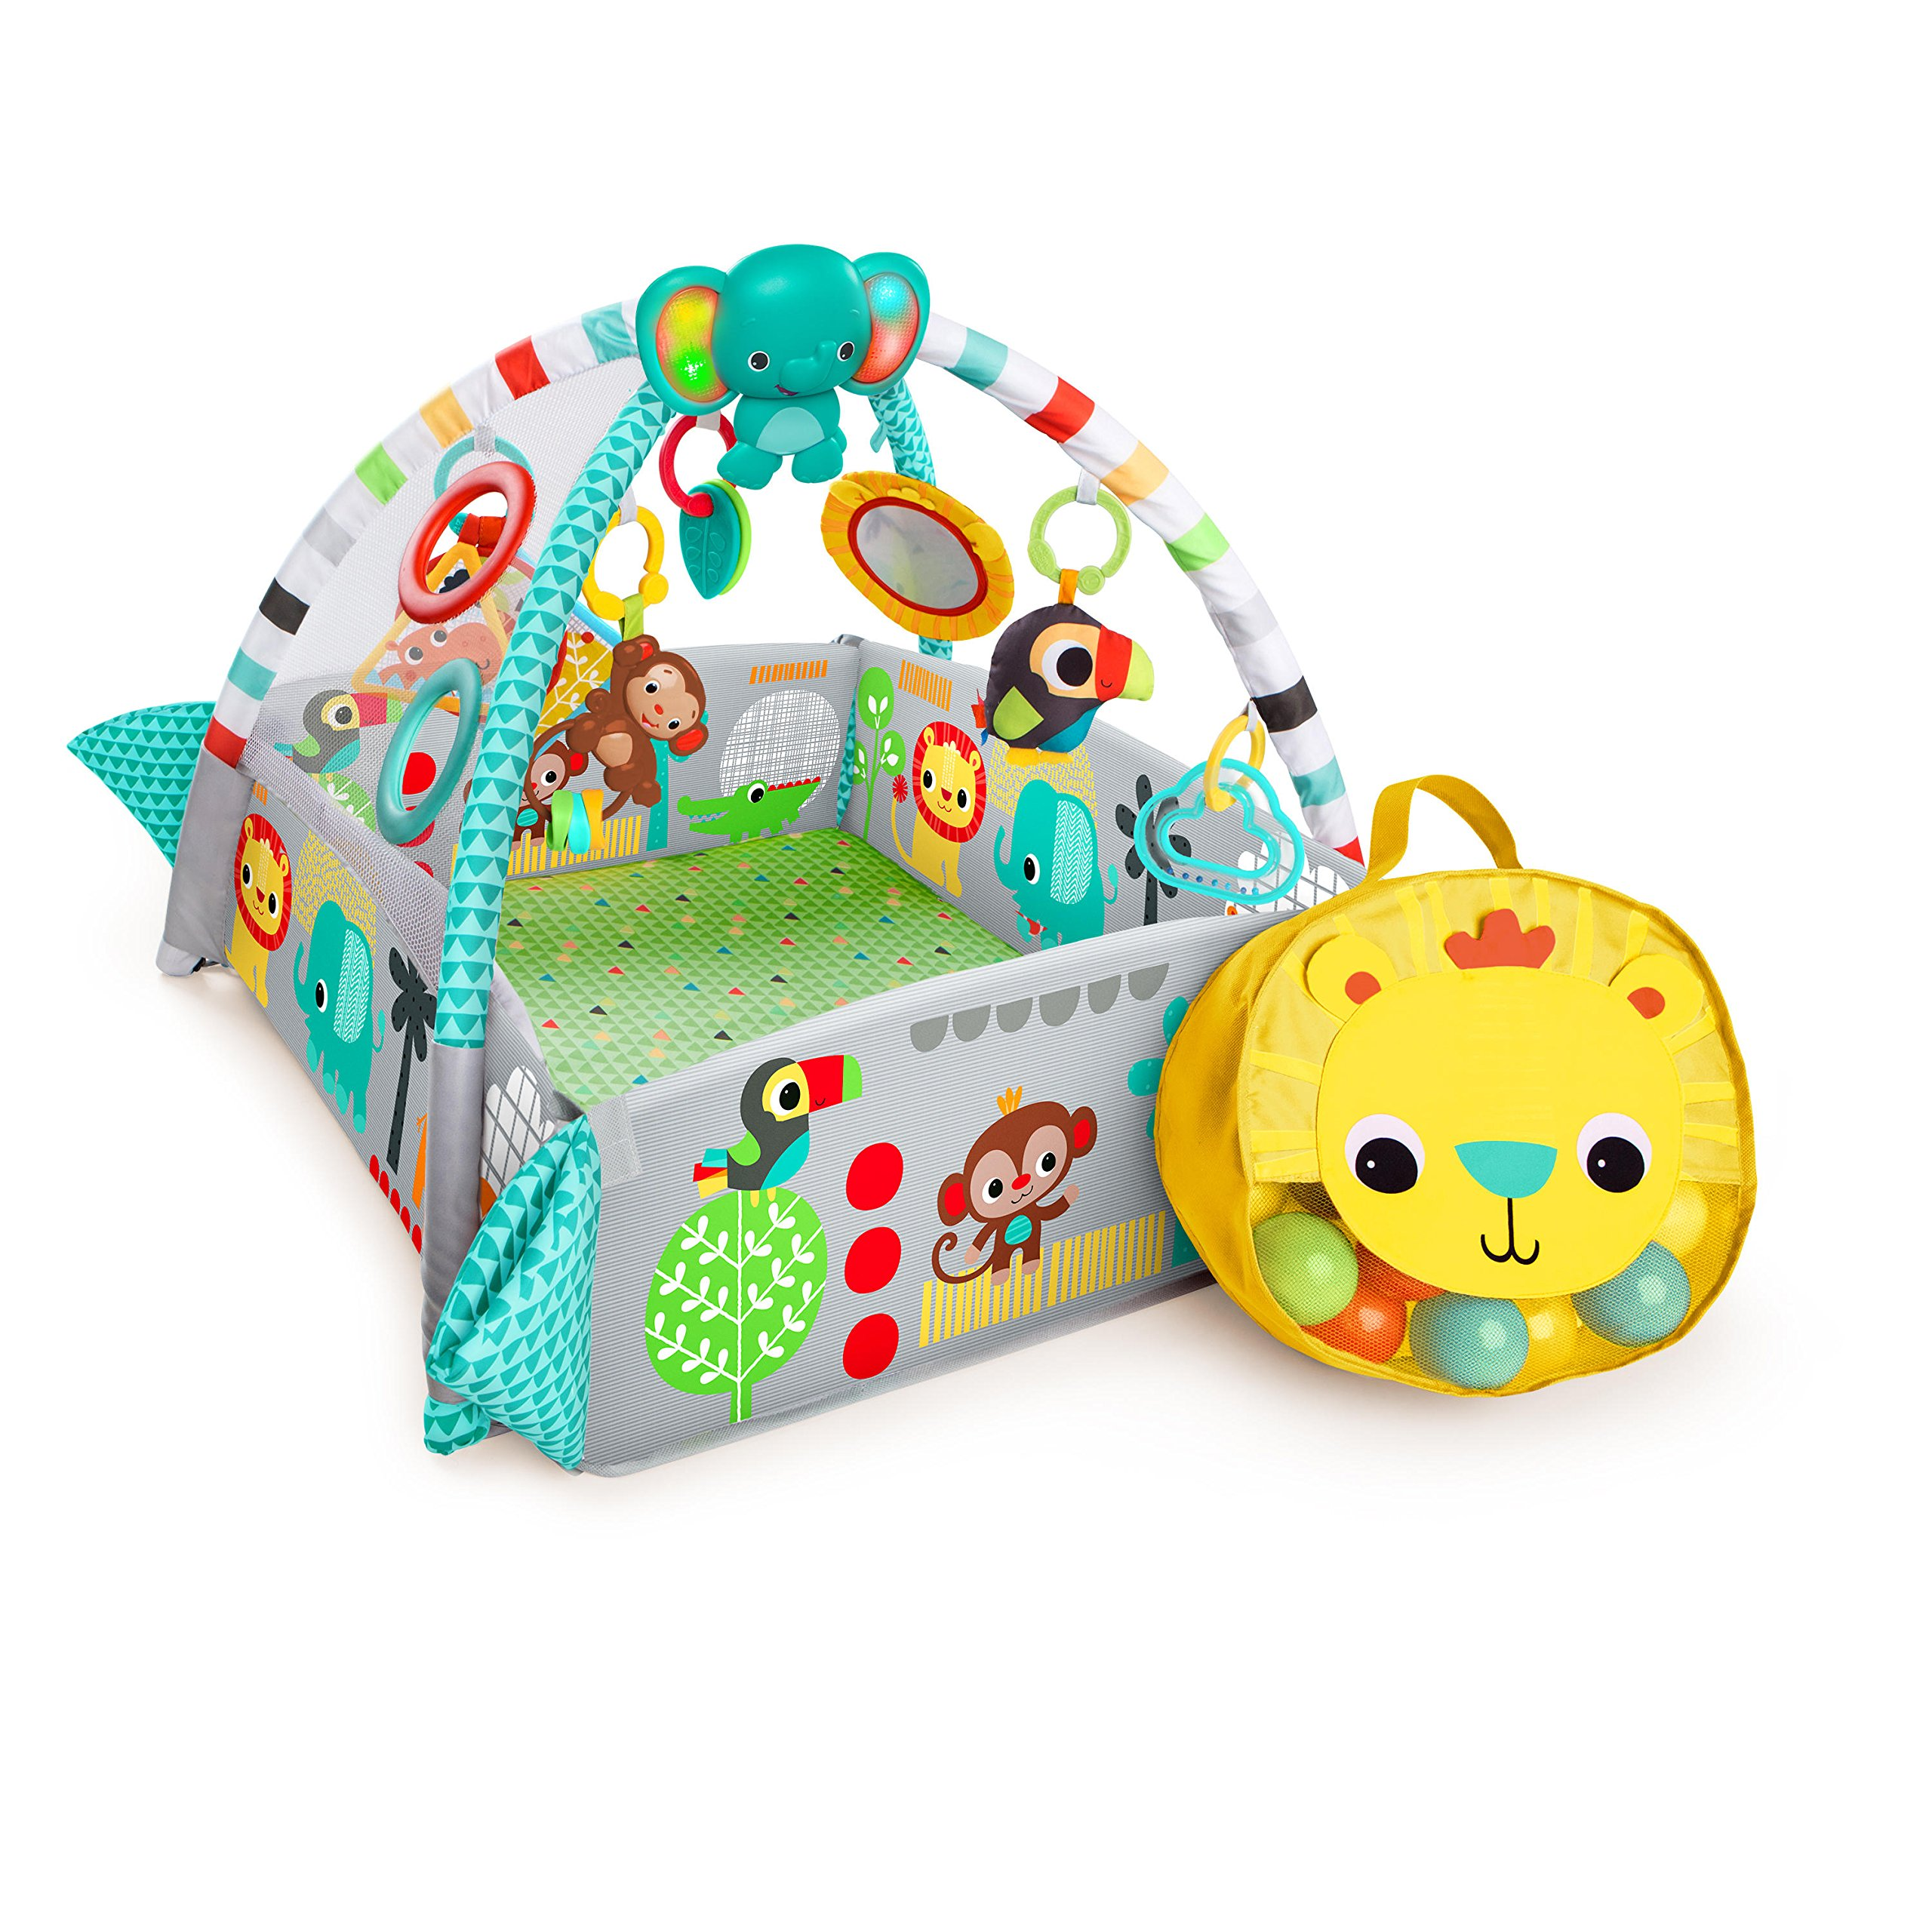 Bright Starts 5-in-1 Your Way Ball Play Activity Gym by Bright Starts (Image #1)